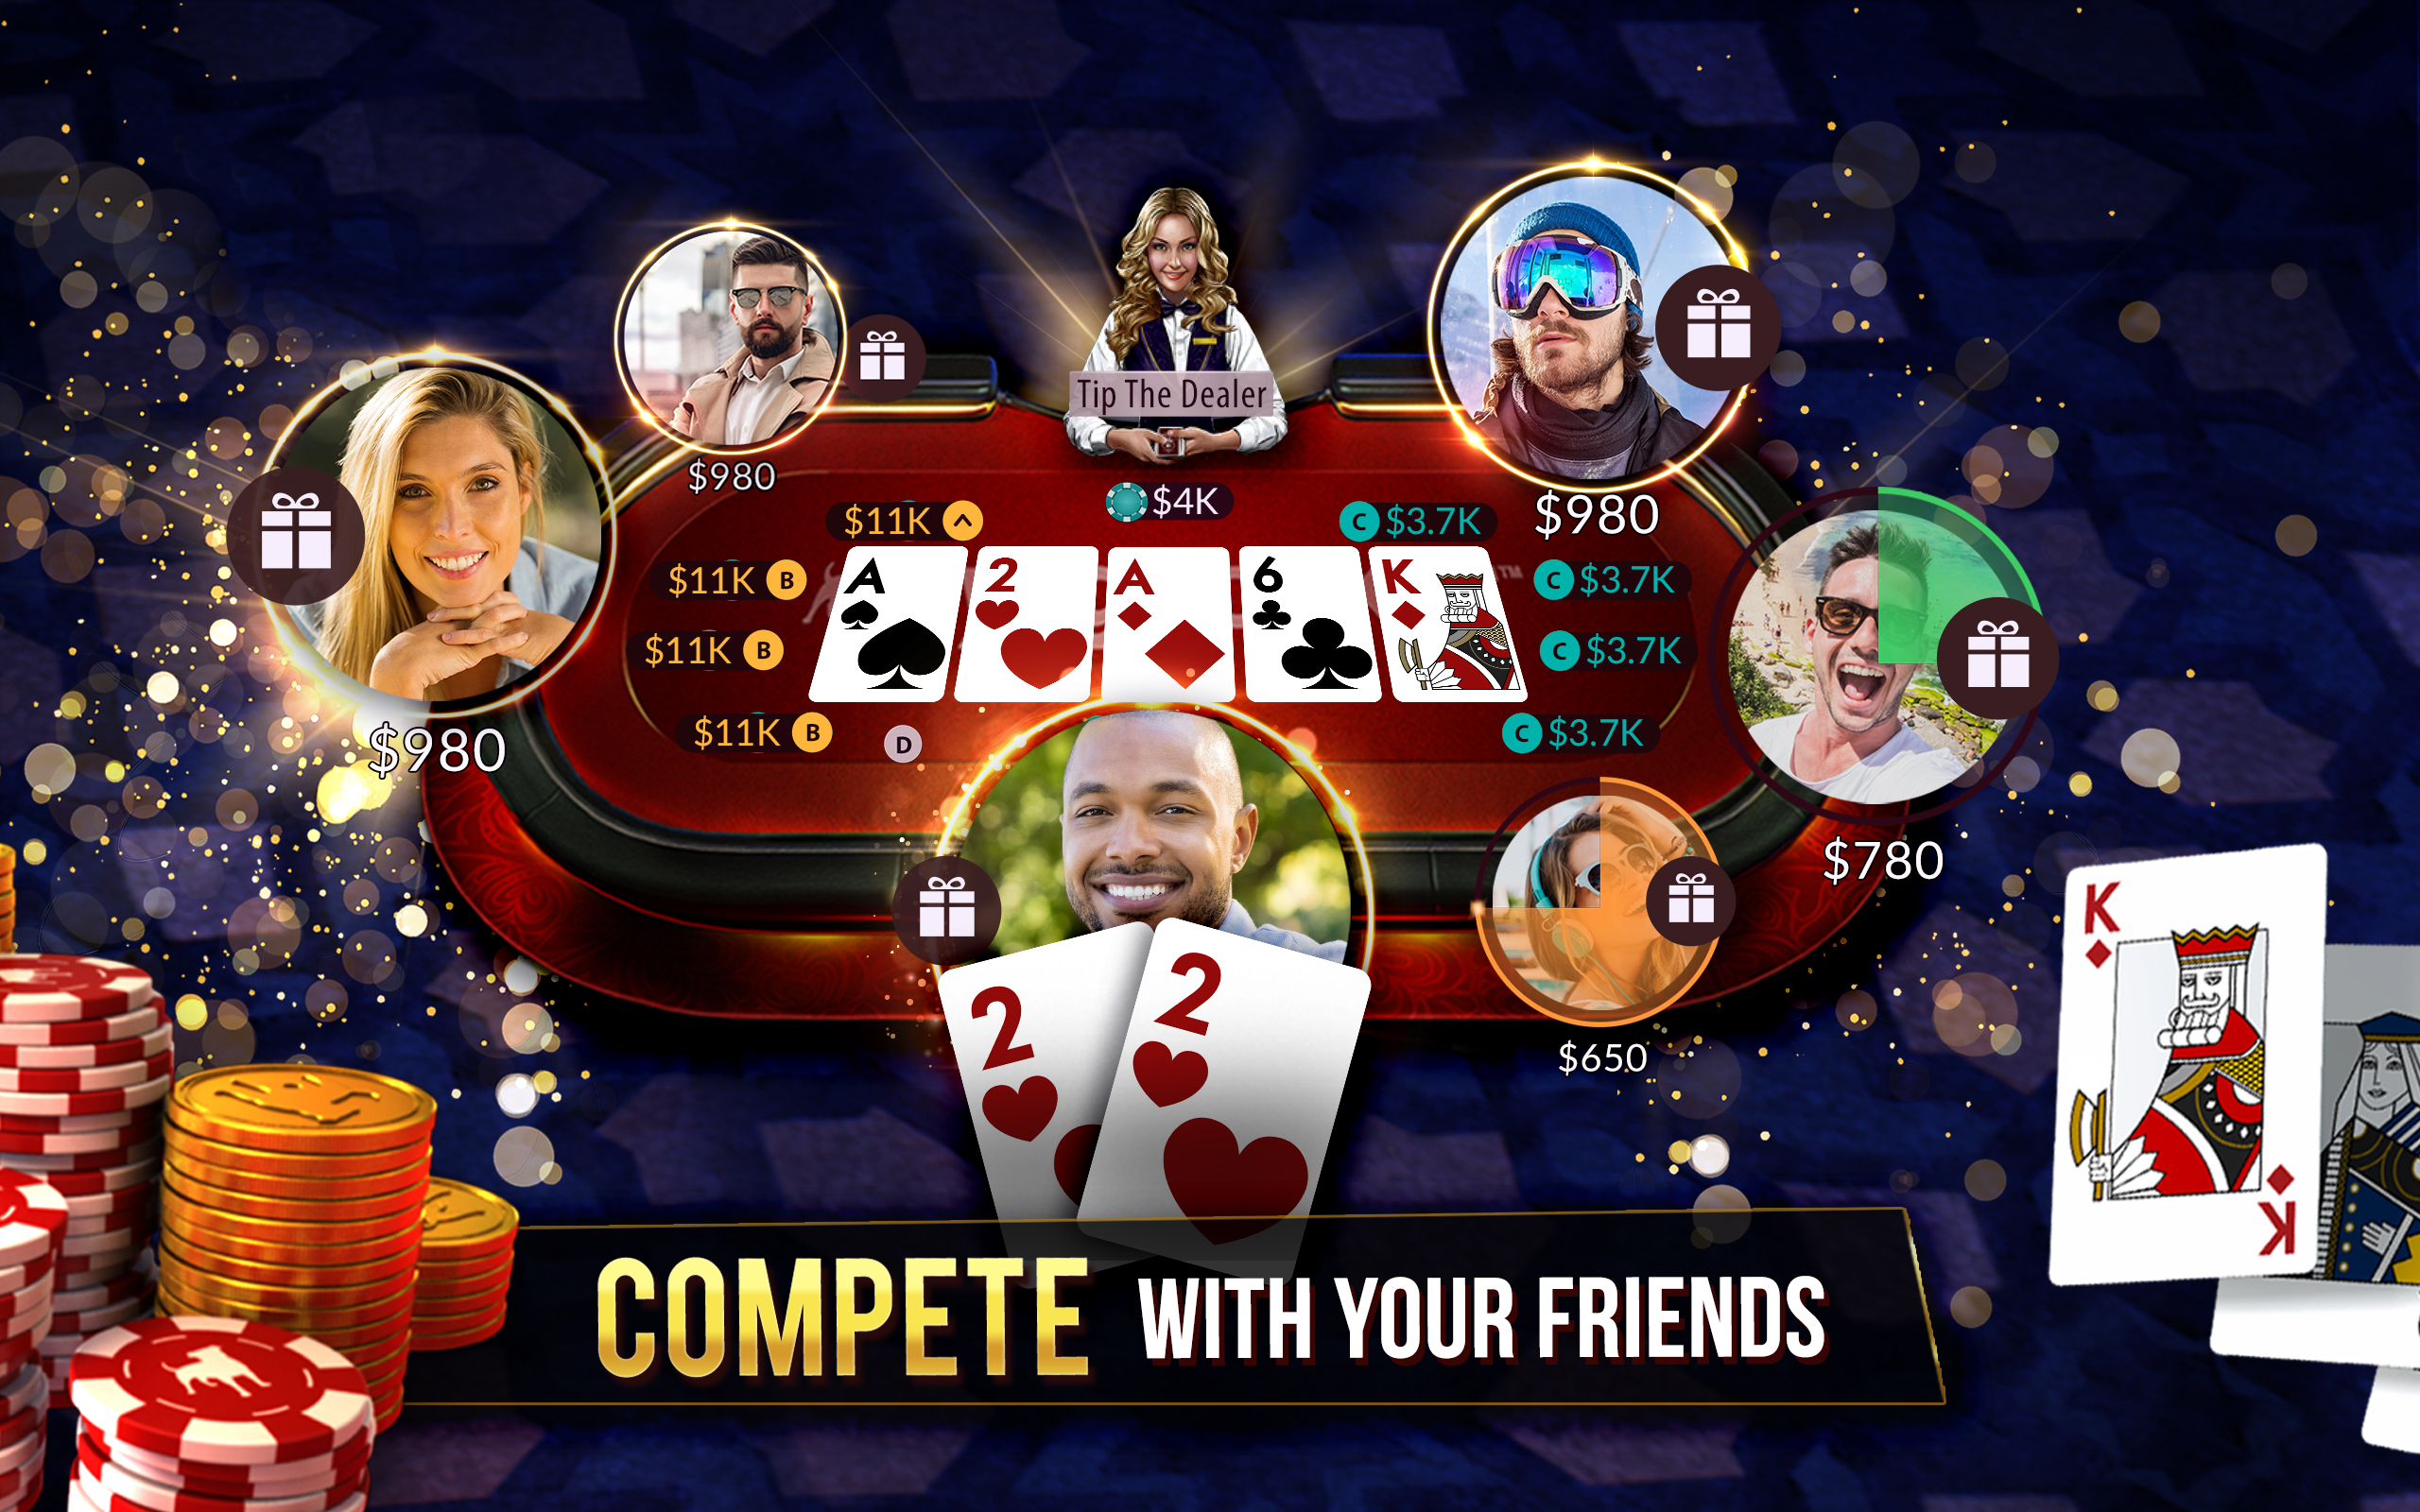 Zynga Poker Free Texas Holdem Online Card Games Apk 22 09 Download For Android Download Zynga Poker Free Texas Holdem Online Card Games Apk Latest Version Apkfab Com